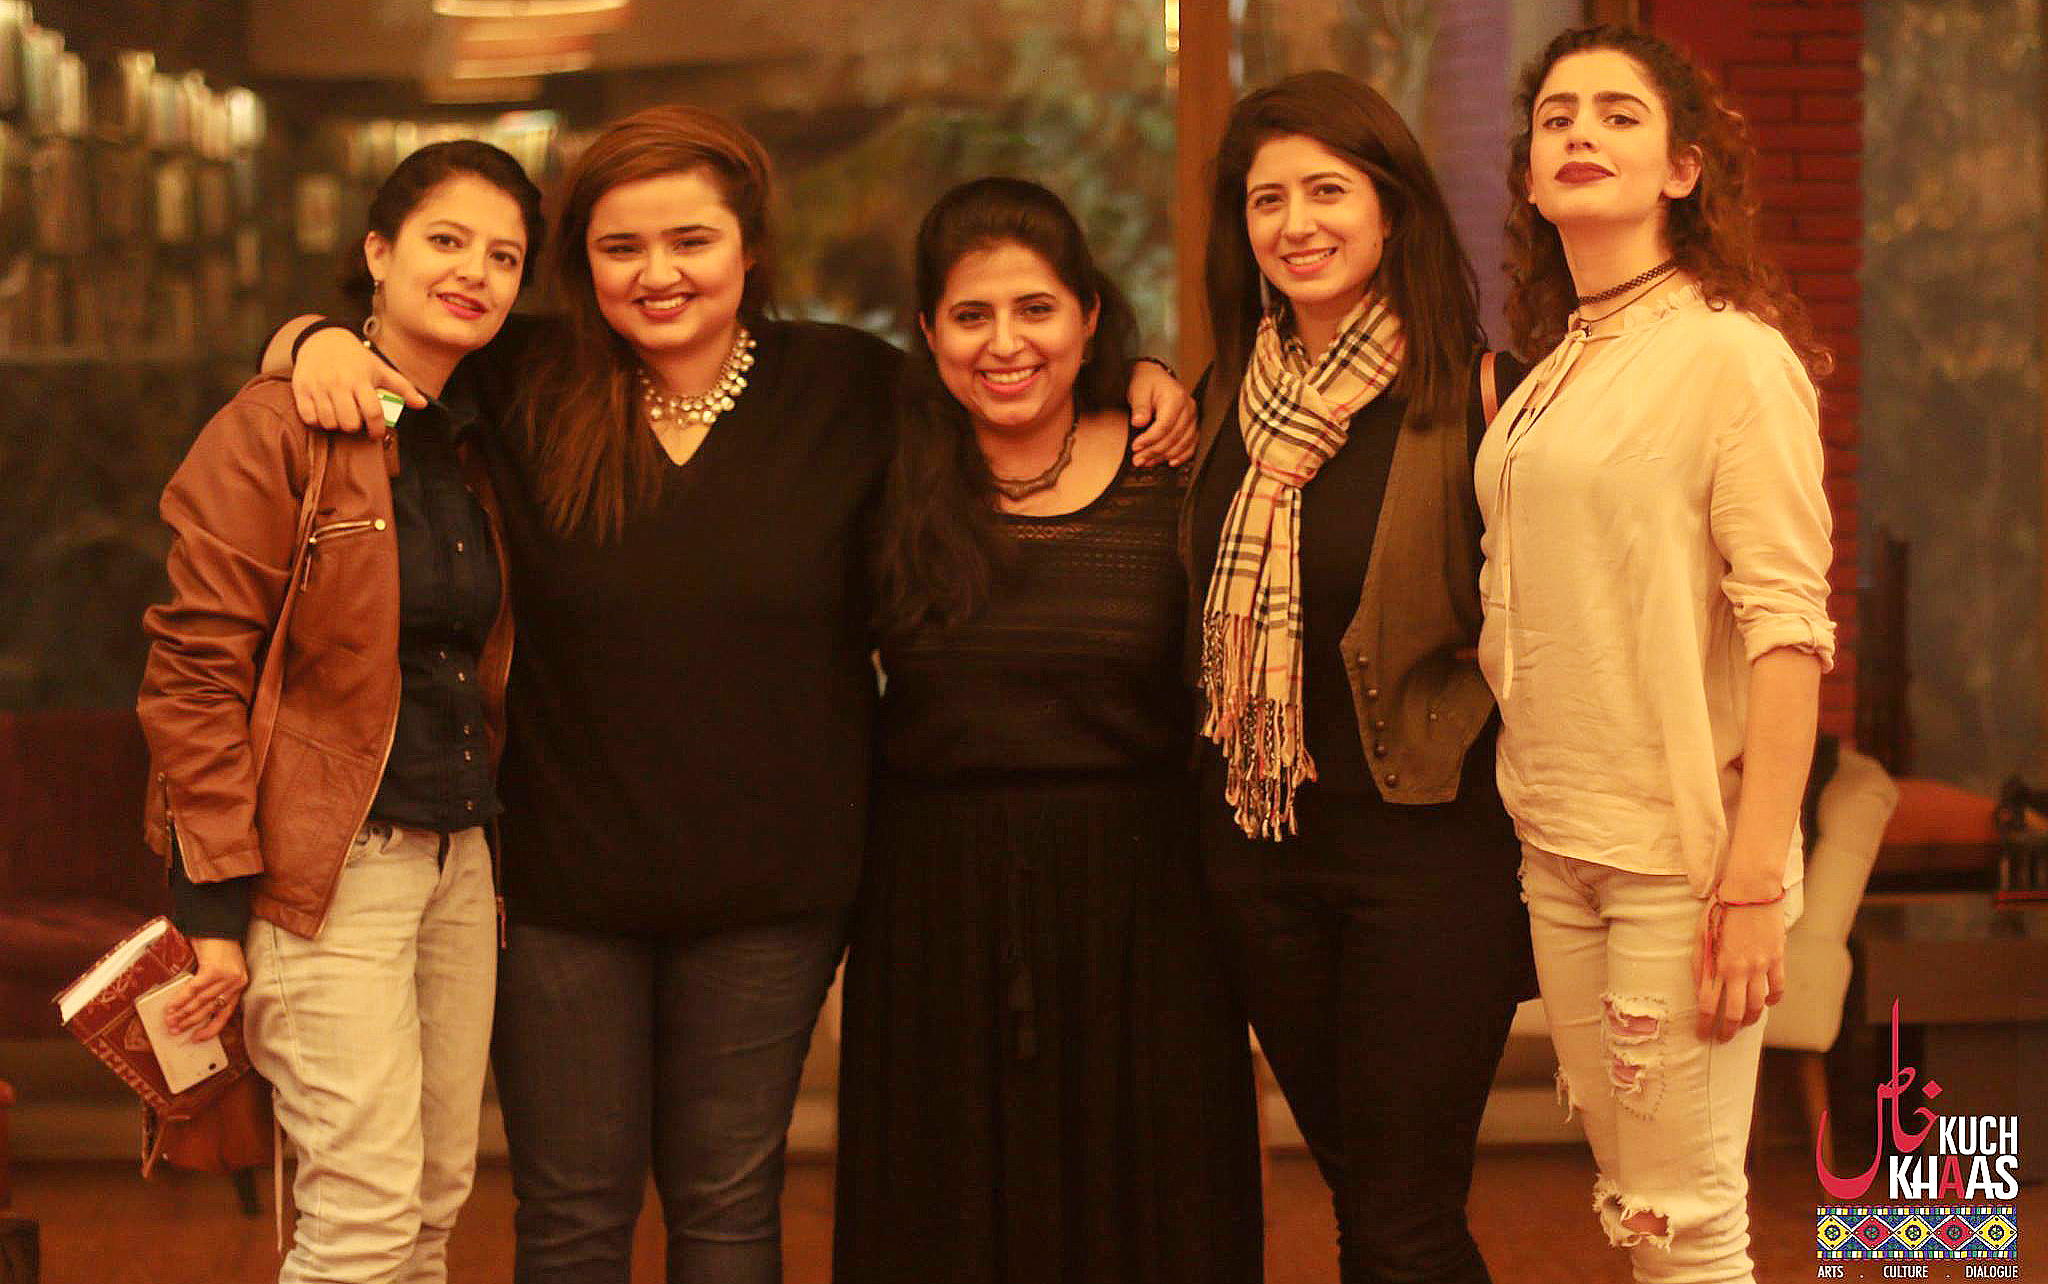 (L-R) The 'fabulous five': Annie, Faiza, Ayesha, Sana and Fatima - The Auratnaak Show in Islamabad